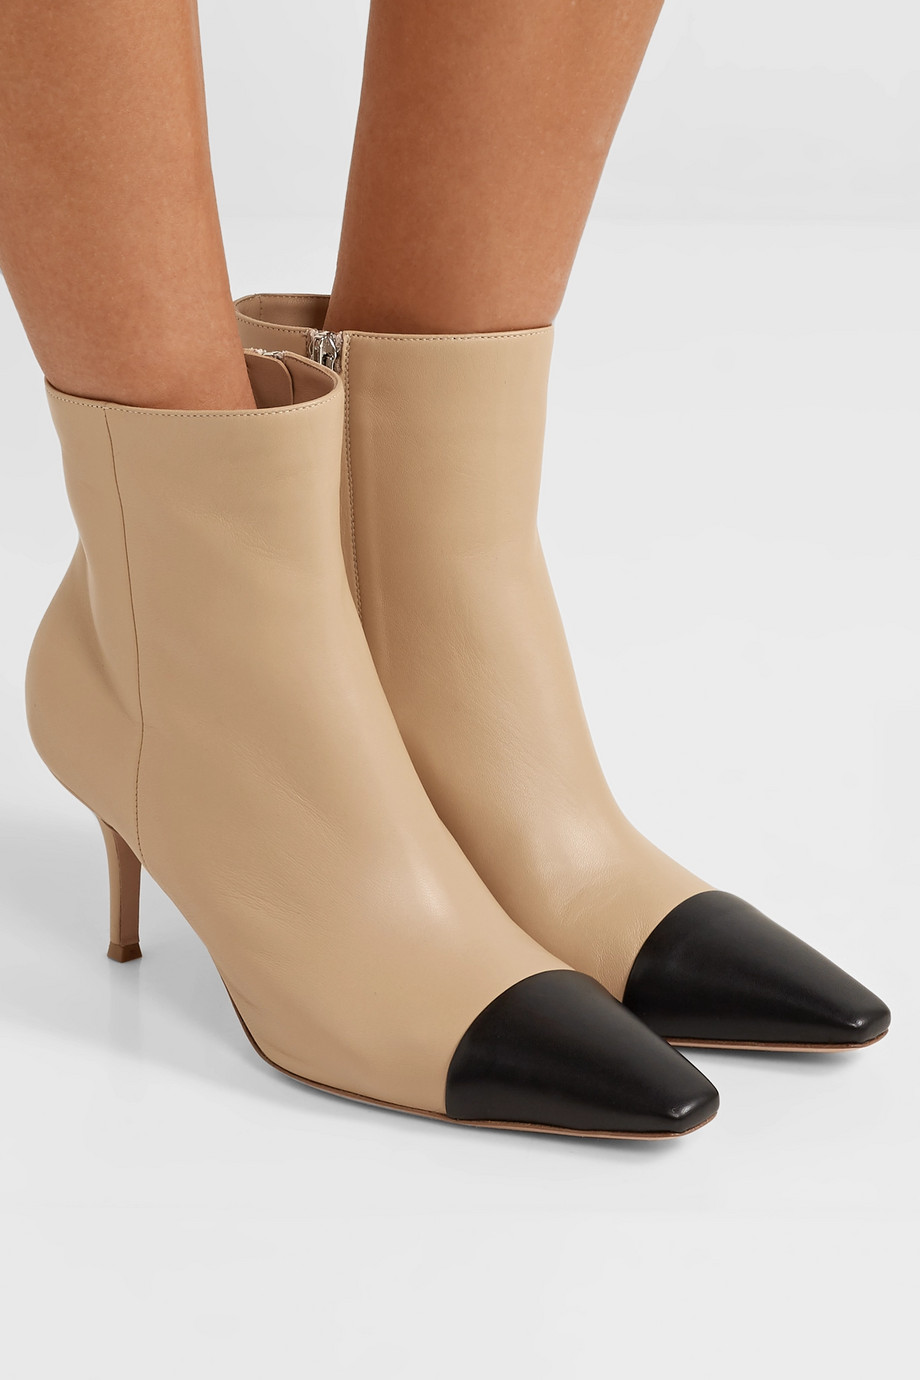 GIANVITO ROSSI 70 two-tone leather ankle boots